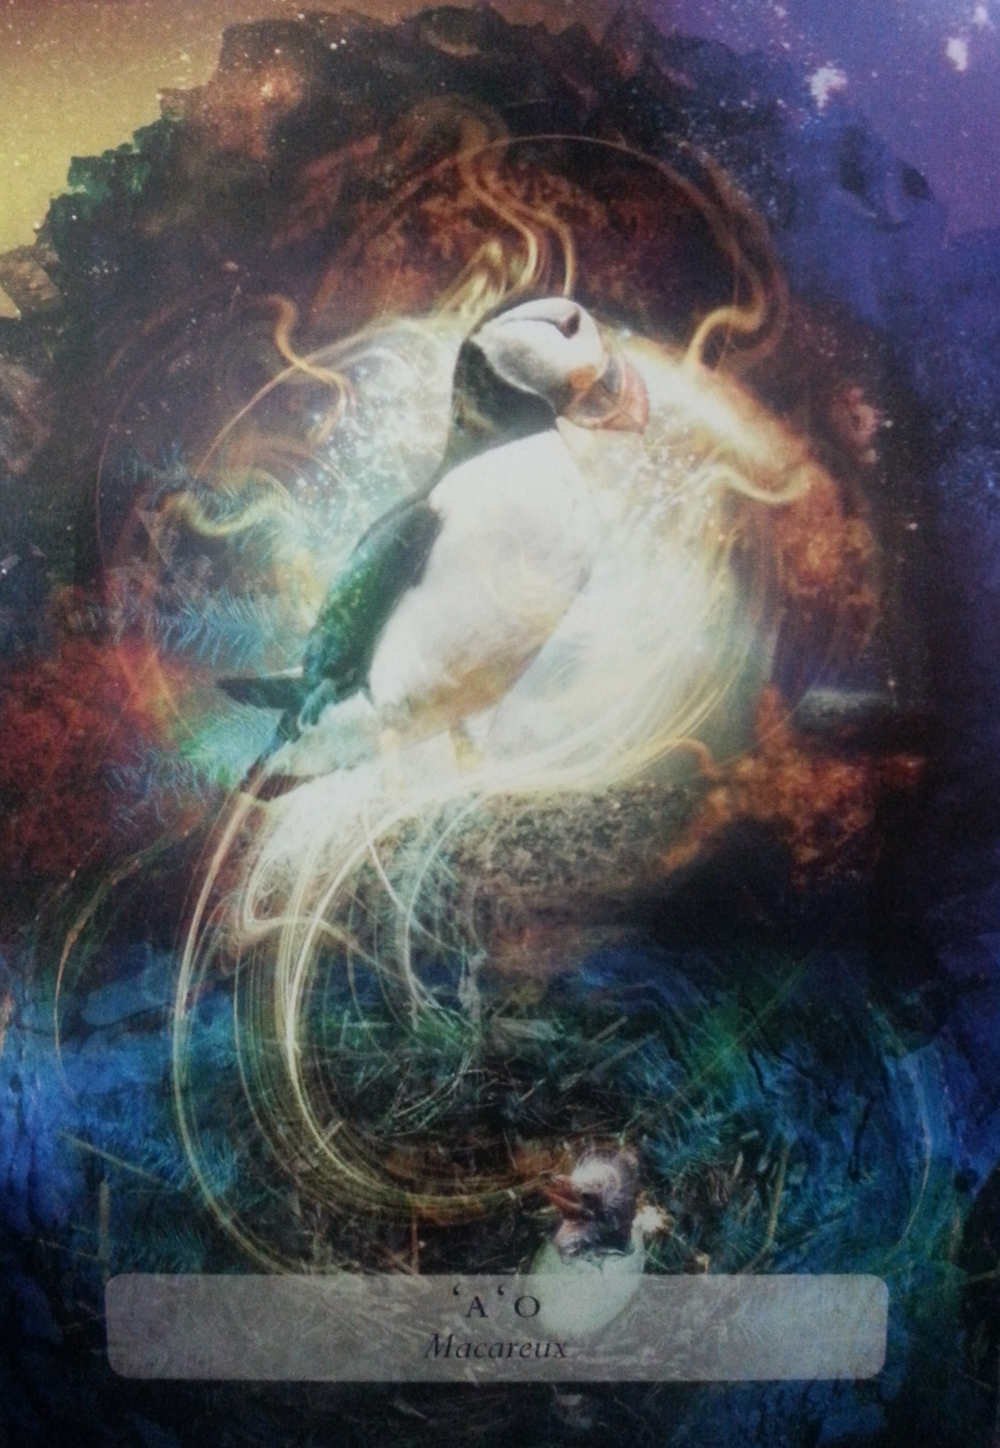 ODIN'S DAY JULY 29 TH 2015: THE SACRED PUFFIN HOLDS THE FLAME OF REBIRTH THROUGH TRANSFORMATION & JOY, LET YOUR HEART LEAD